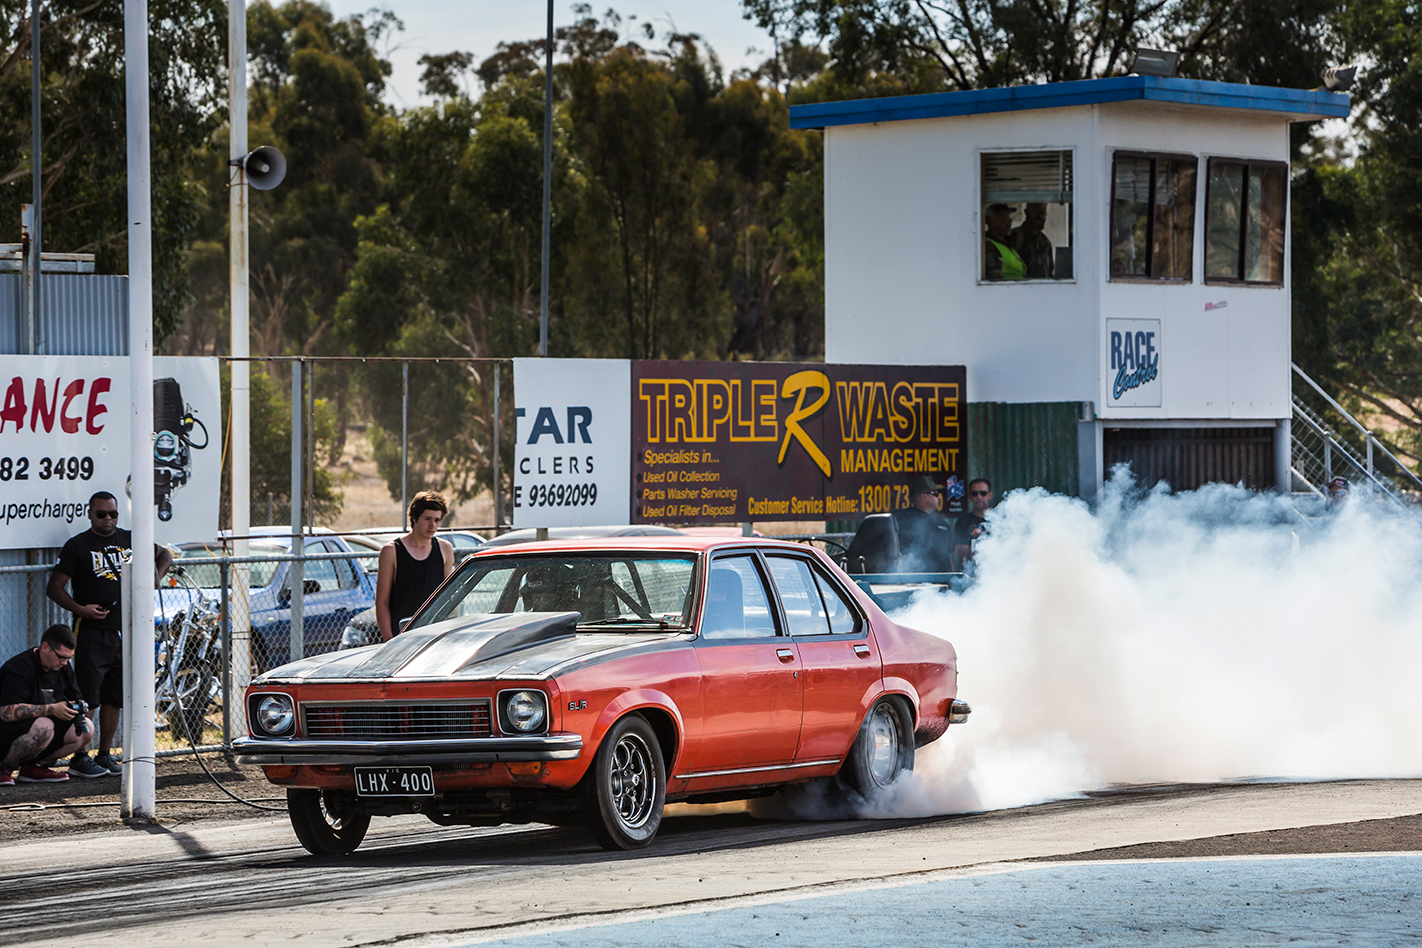 King Of The Street meeting at Heathcote Park Raceway